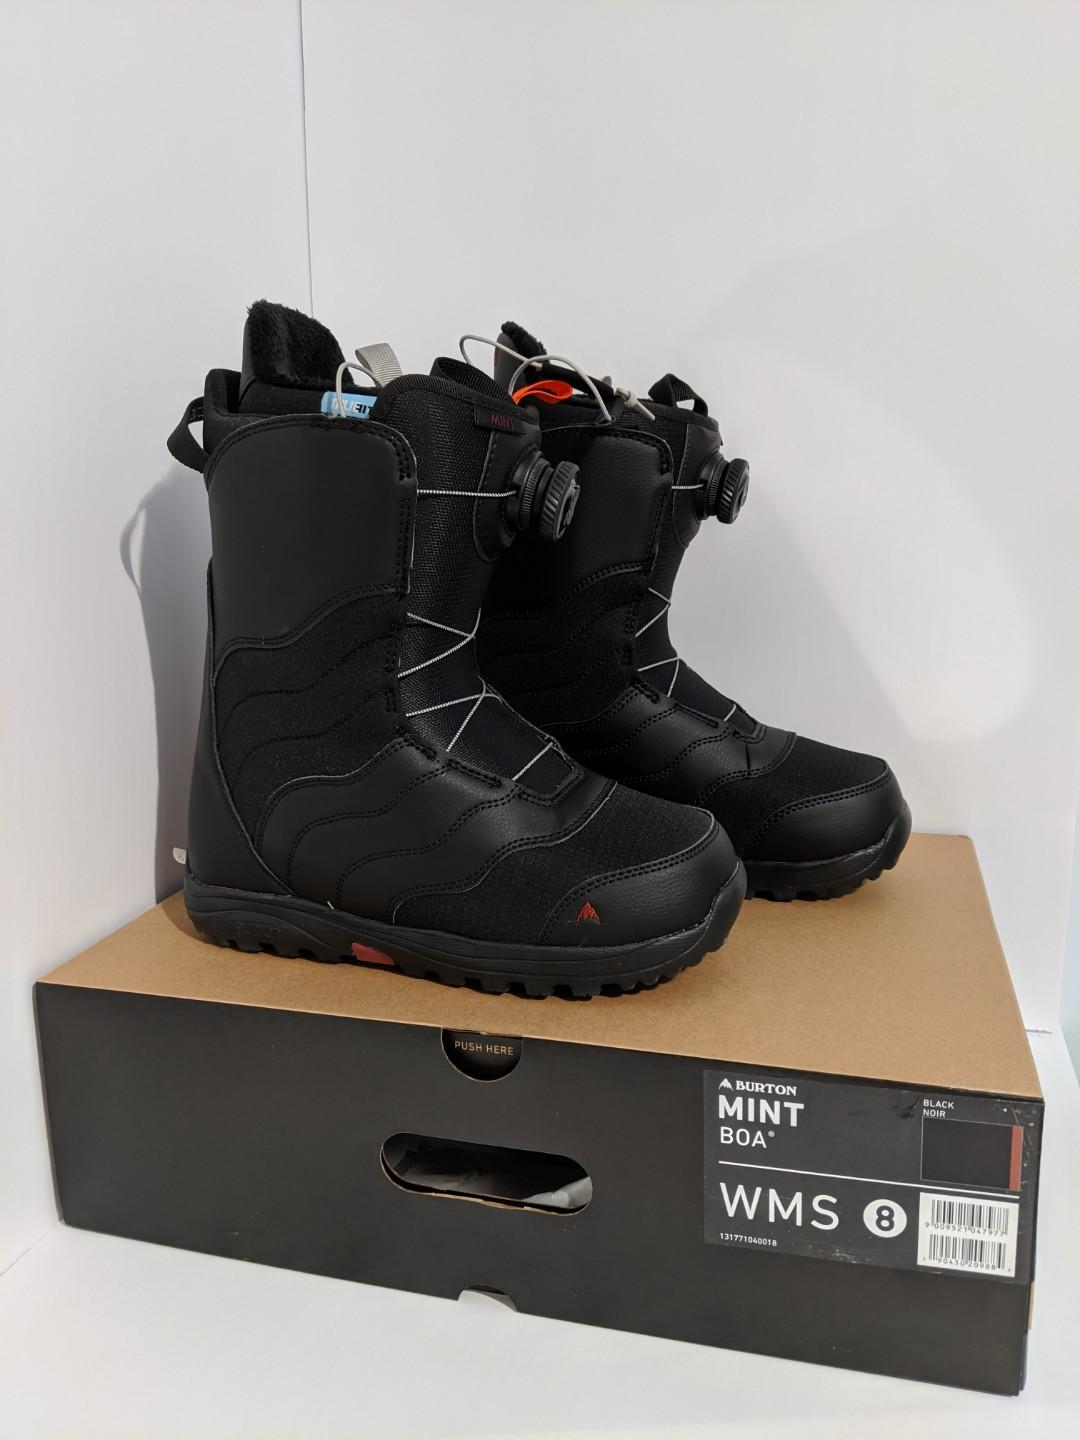 NEW/UNUSED Women's Sz8 Black Burton Mint Snowboard Boots 2018/19